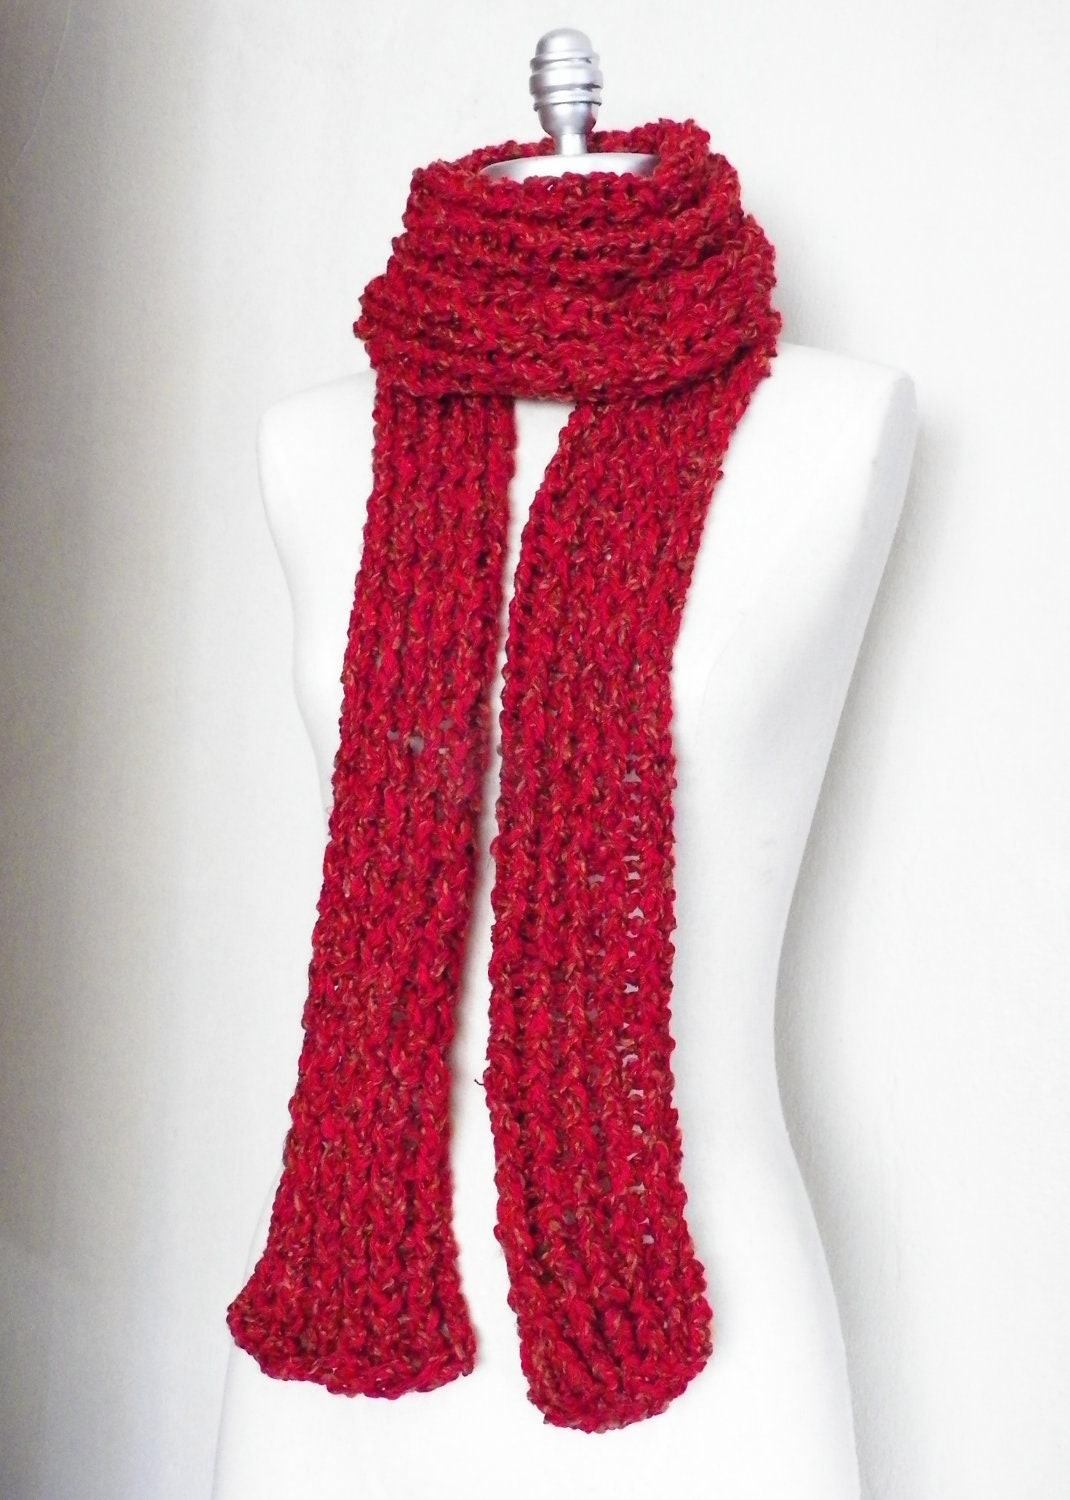 Big Red Scarf Knitwear Chunky Knit Extra Long By